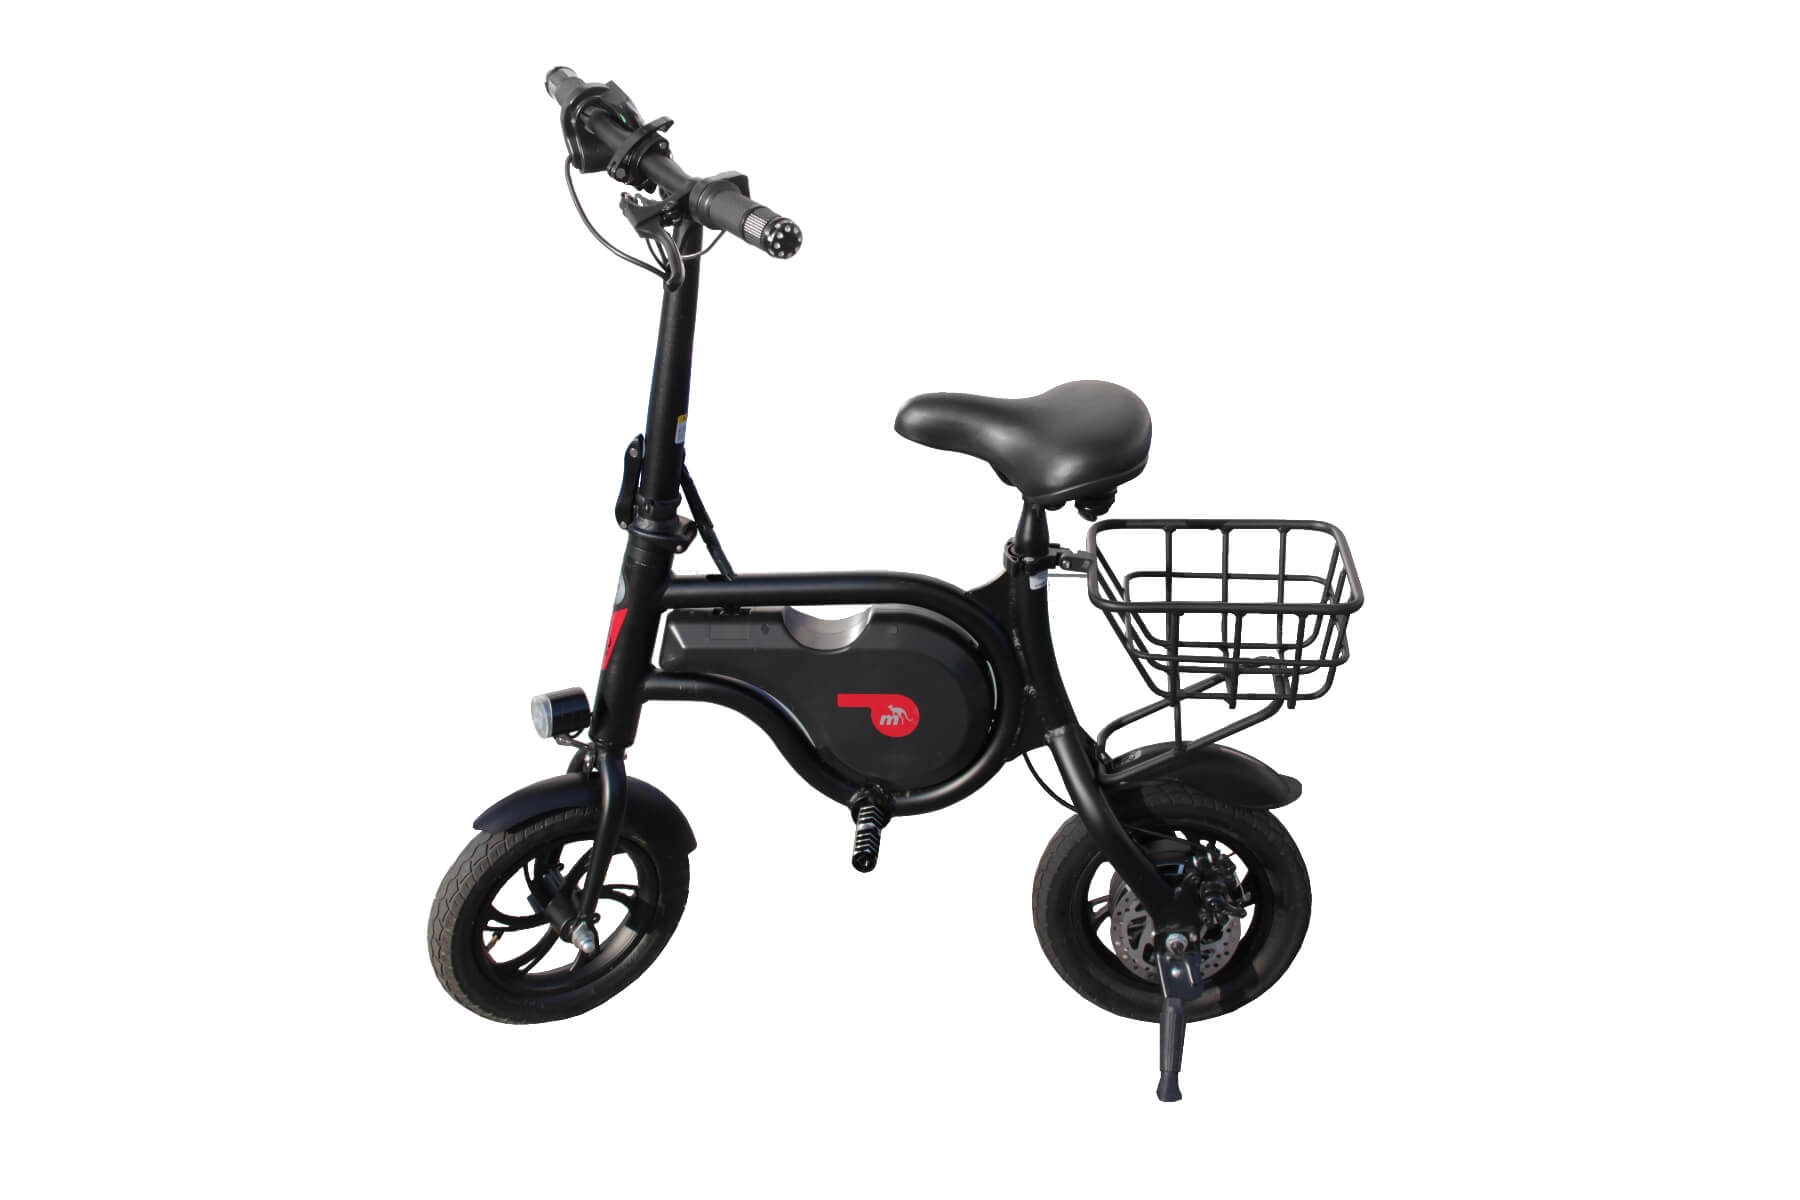 e bike elektrofahrrad 7 8ah e scooter 25km h elektro scooter elektroroller 30km ebay. Black Bedroom Furniture Sets. Home Design Ideas